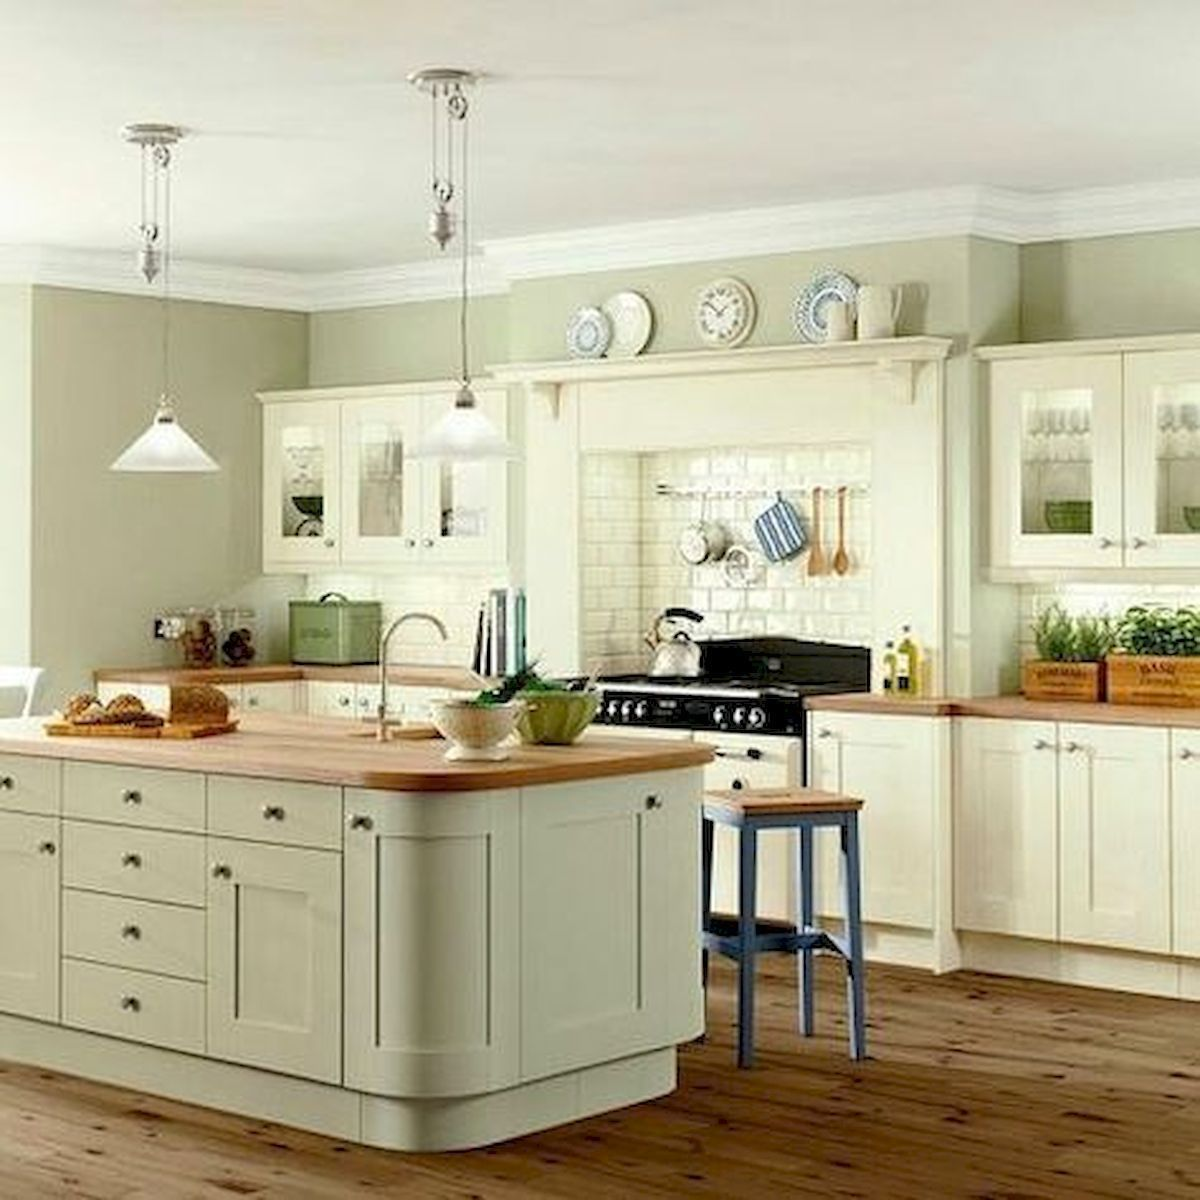 Awesome Sage Greens kitchen Cabinets (4) - Yellowraises ...